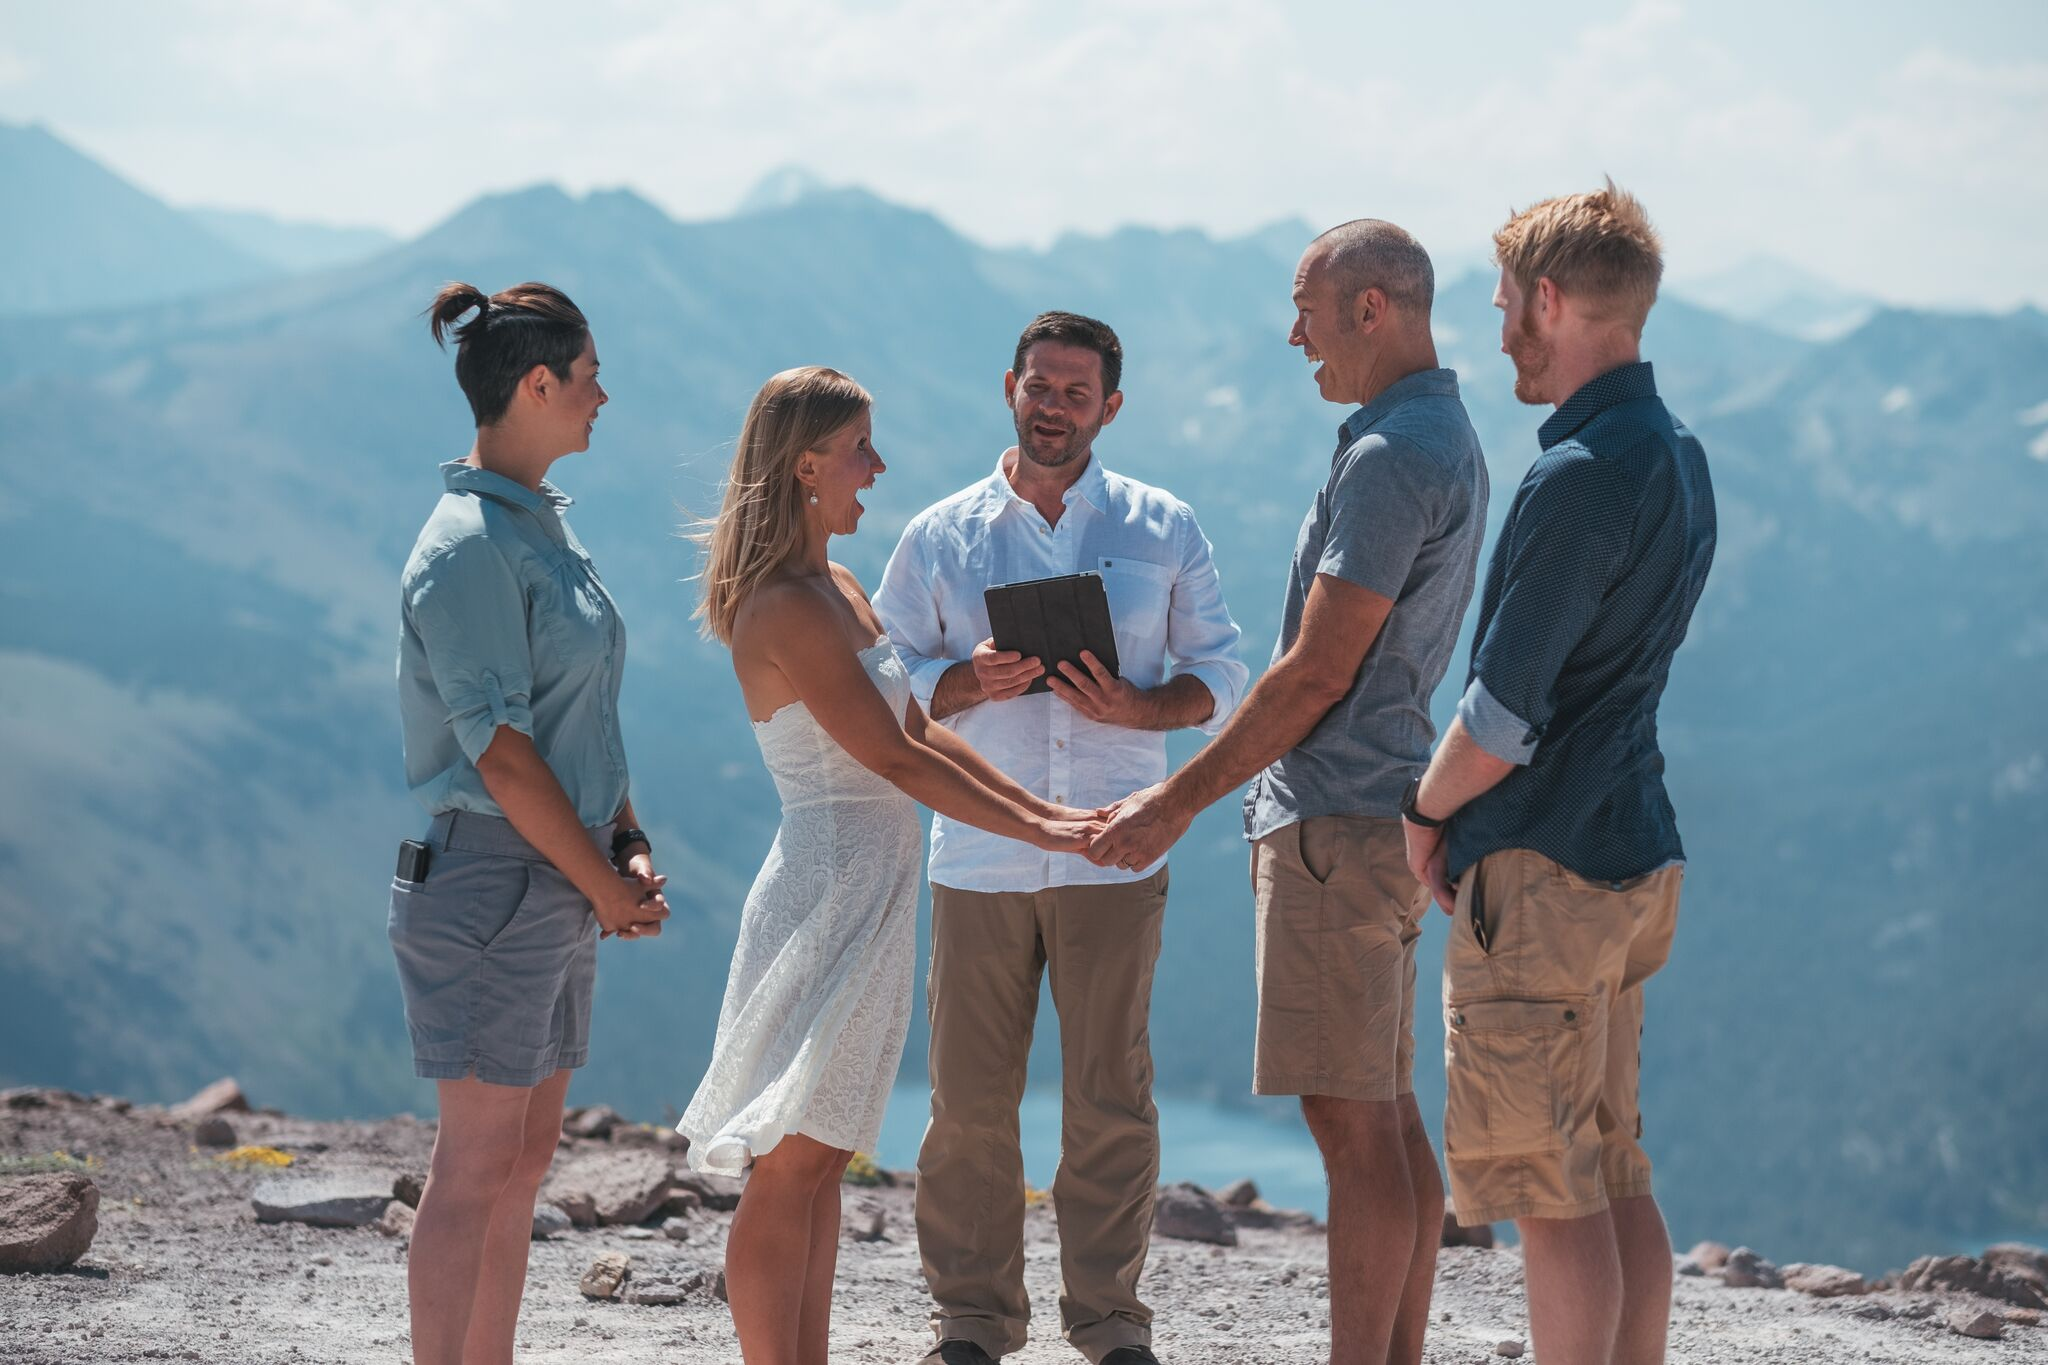 We are announced husband and wife at 11,000 feet!